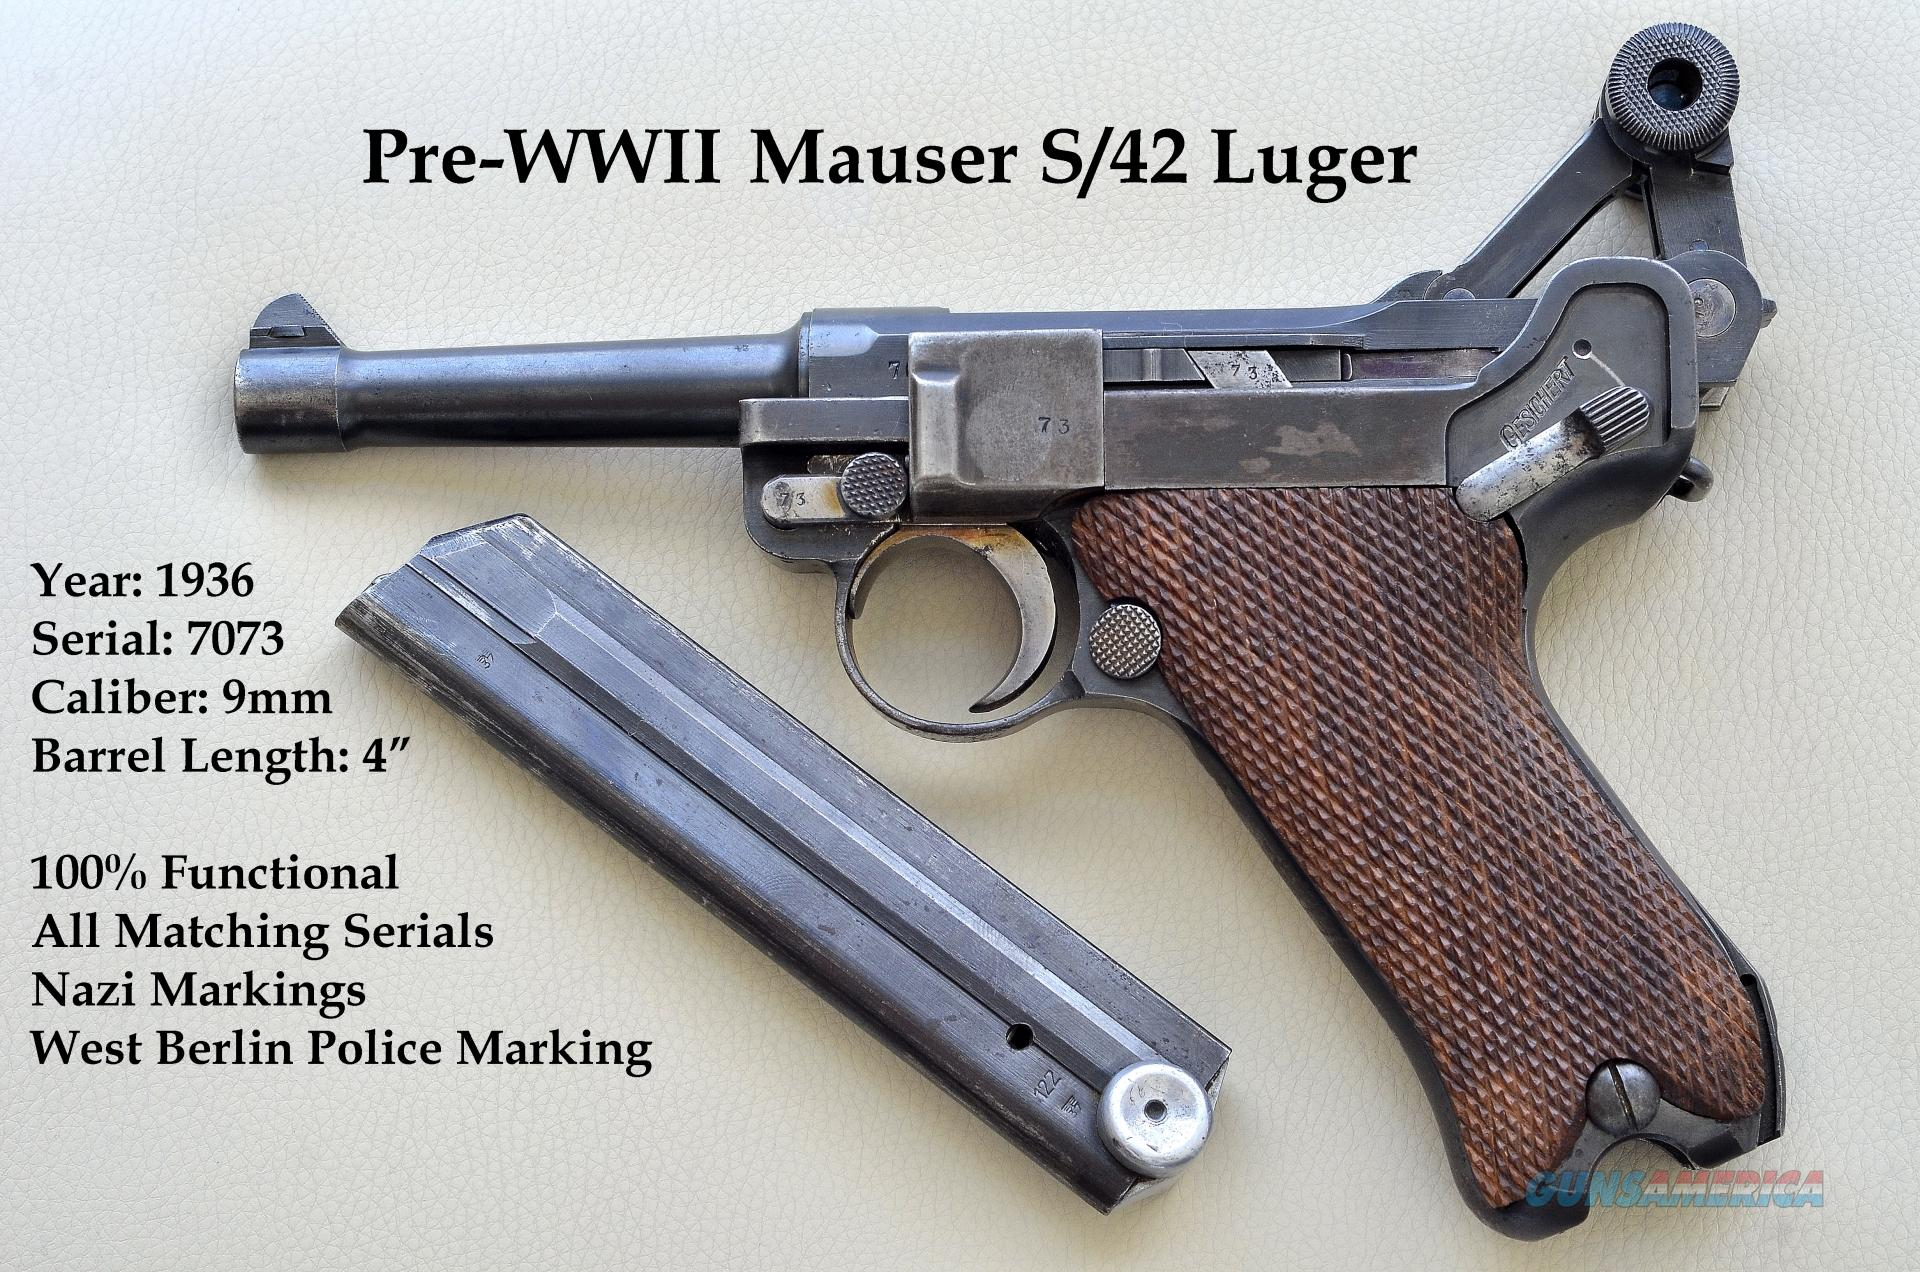 1936 Pre Wwii Mauser Luger Nazi S 42 9mm For Sale